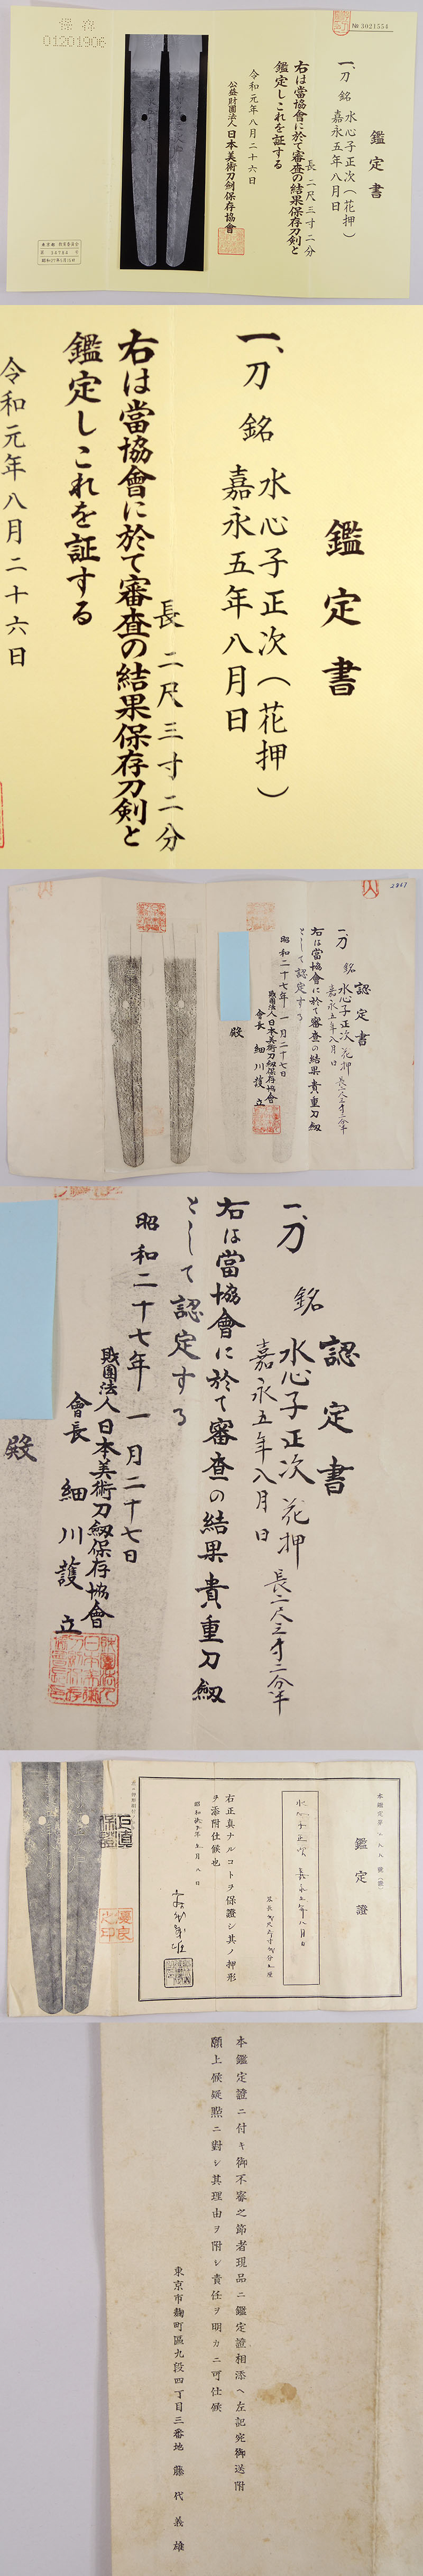 水心子正次(花押) Picture of Certificate